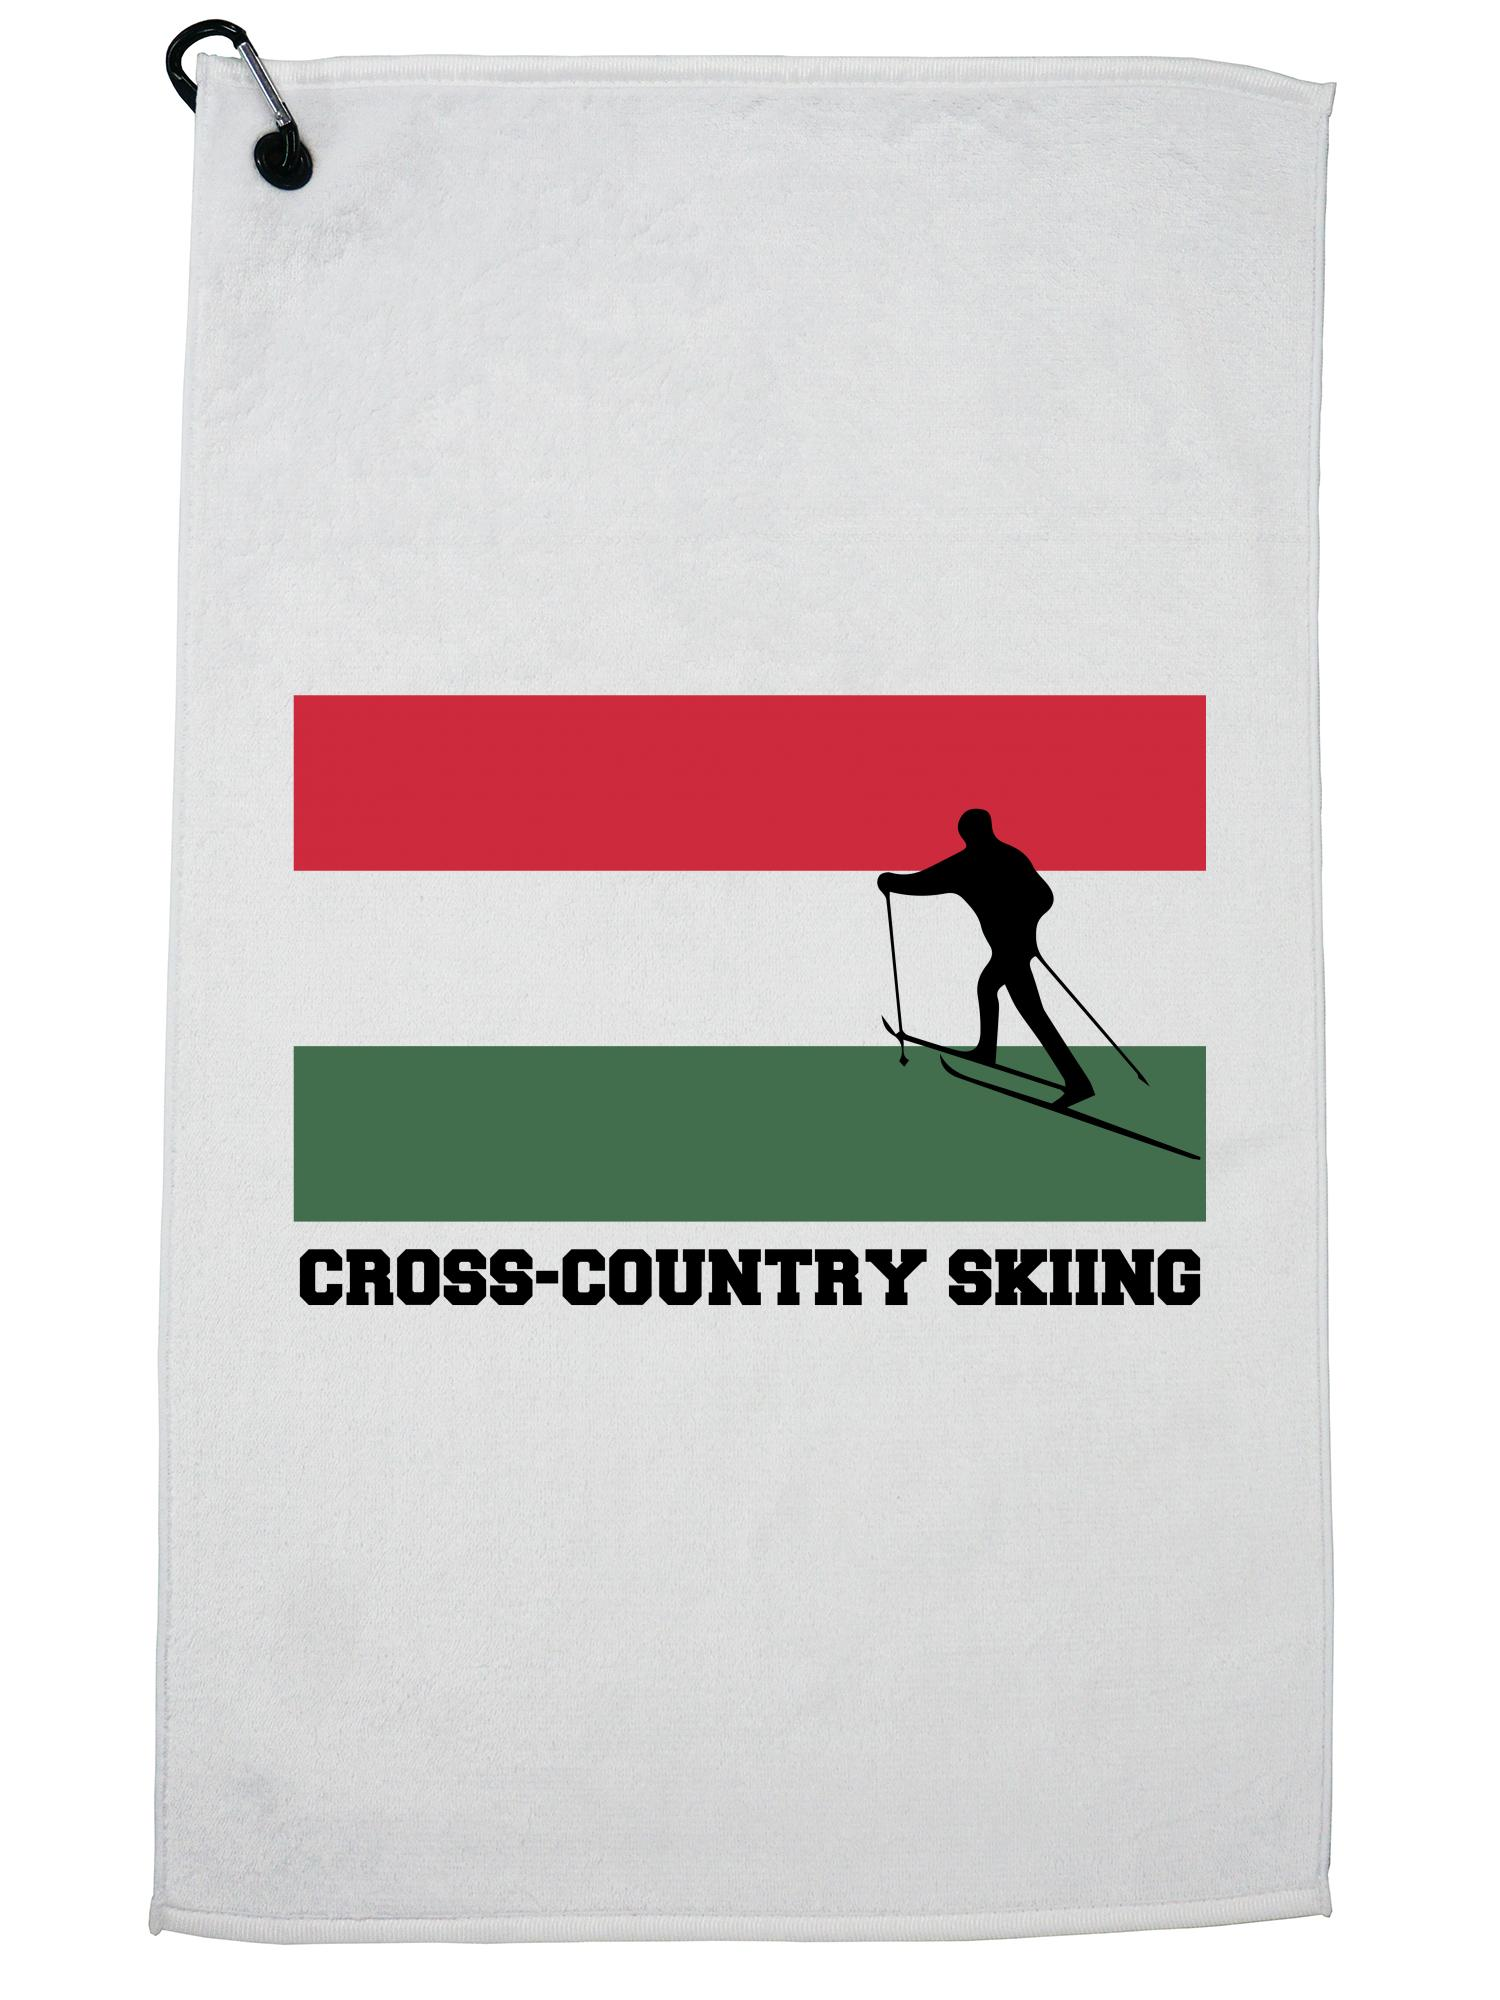 Hungary Olympic Cross-Country Skiing Flag Silhouette Golf Towel with Carabiner Clip by Hollywood Thread